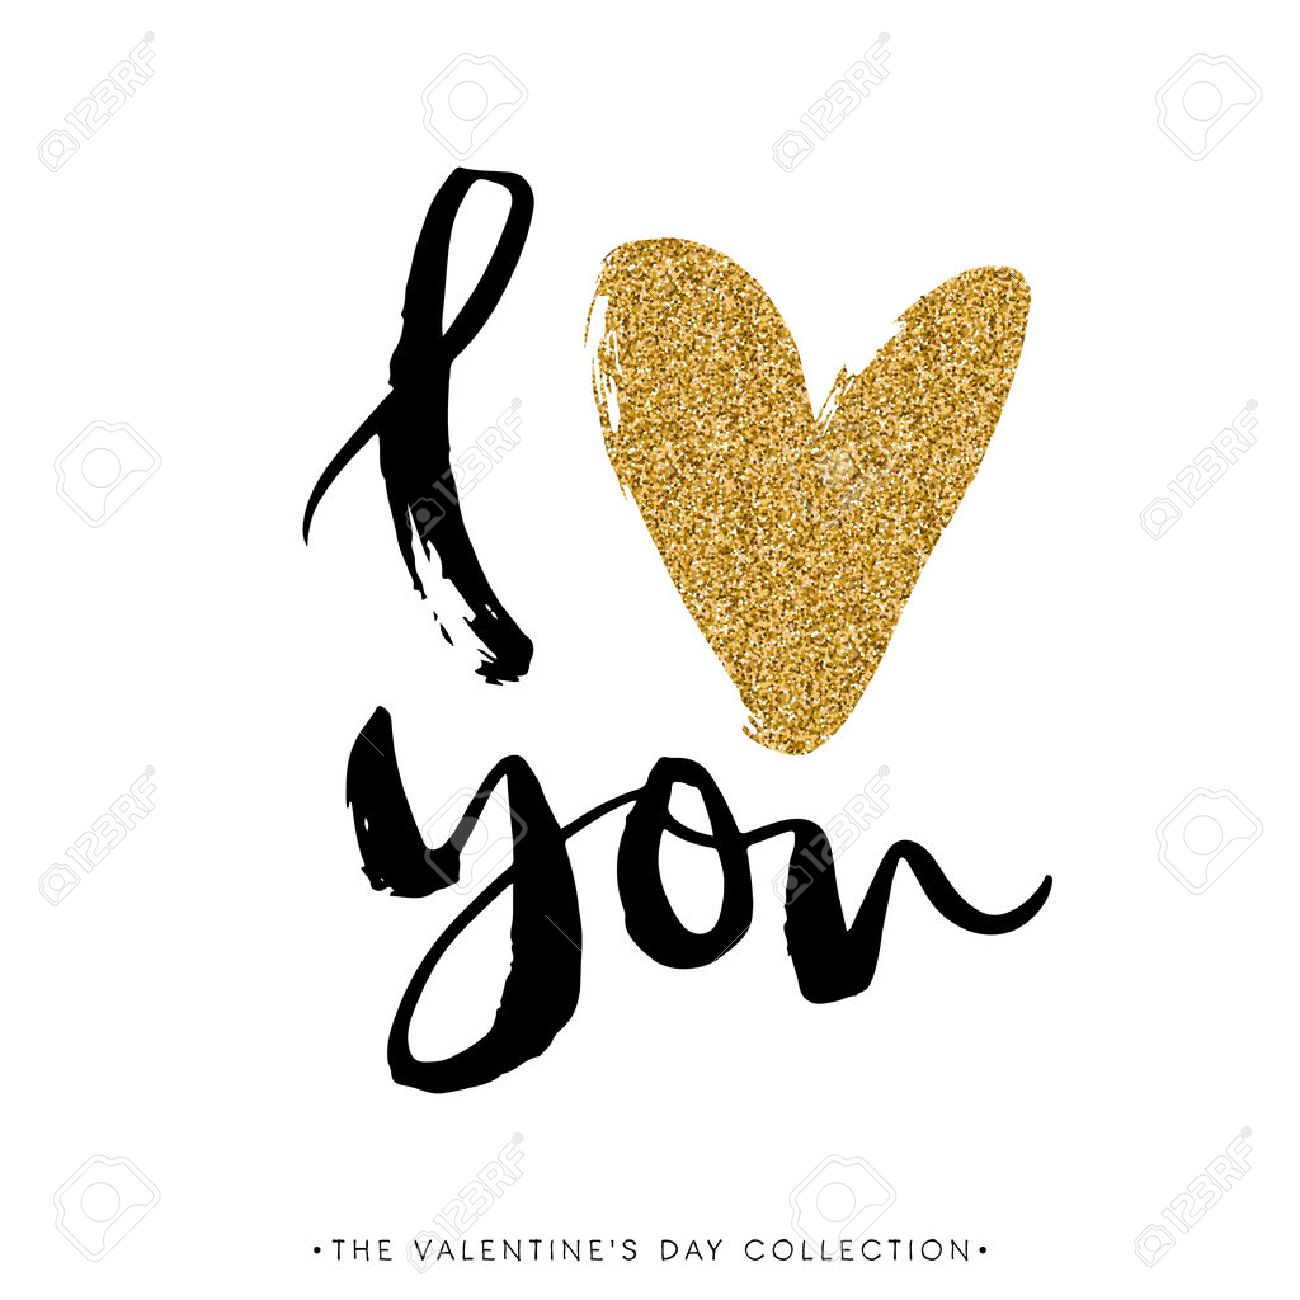 I love you stock photos royalty free business images i love you i heart you valentines day calligraphy glitter card hand drawn biocorpaavc